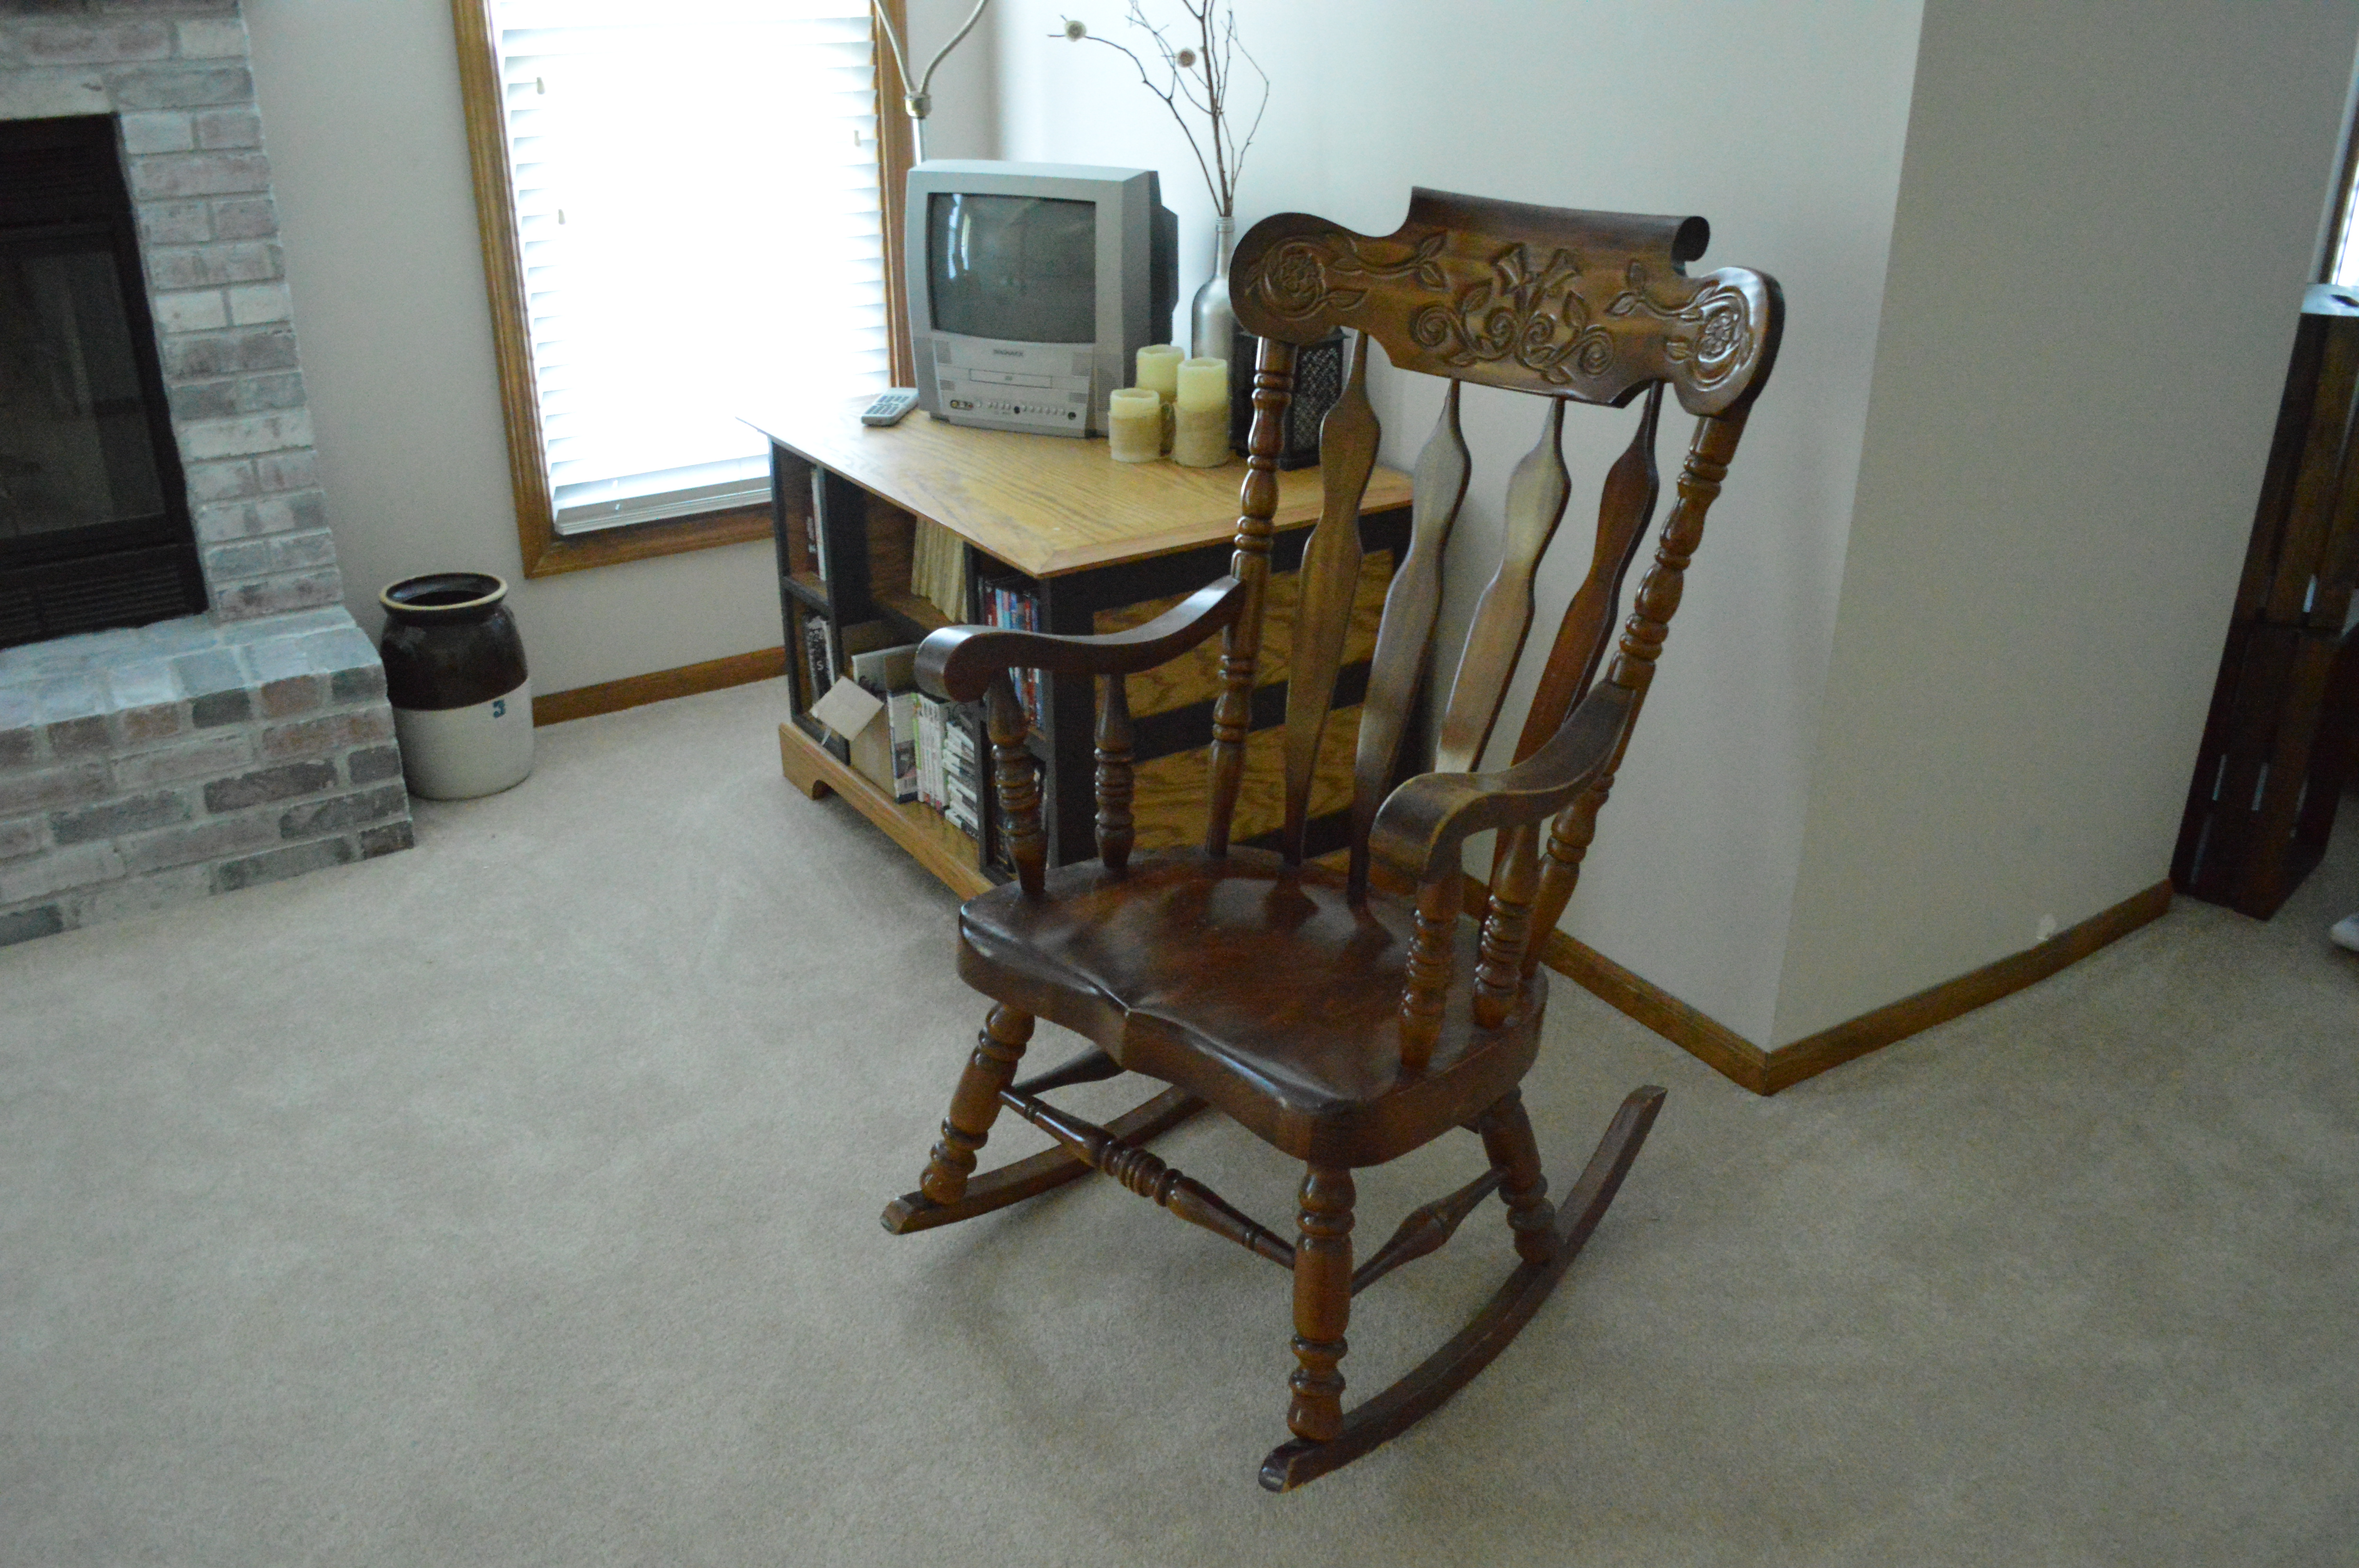 aunt priscilla has a rocking chair acrylic dining with gold legs rock bye baby loving here